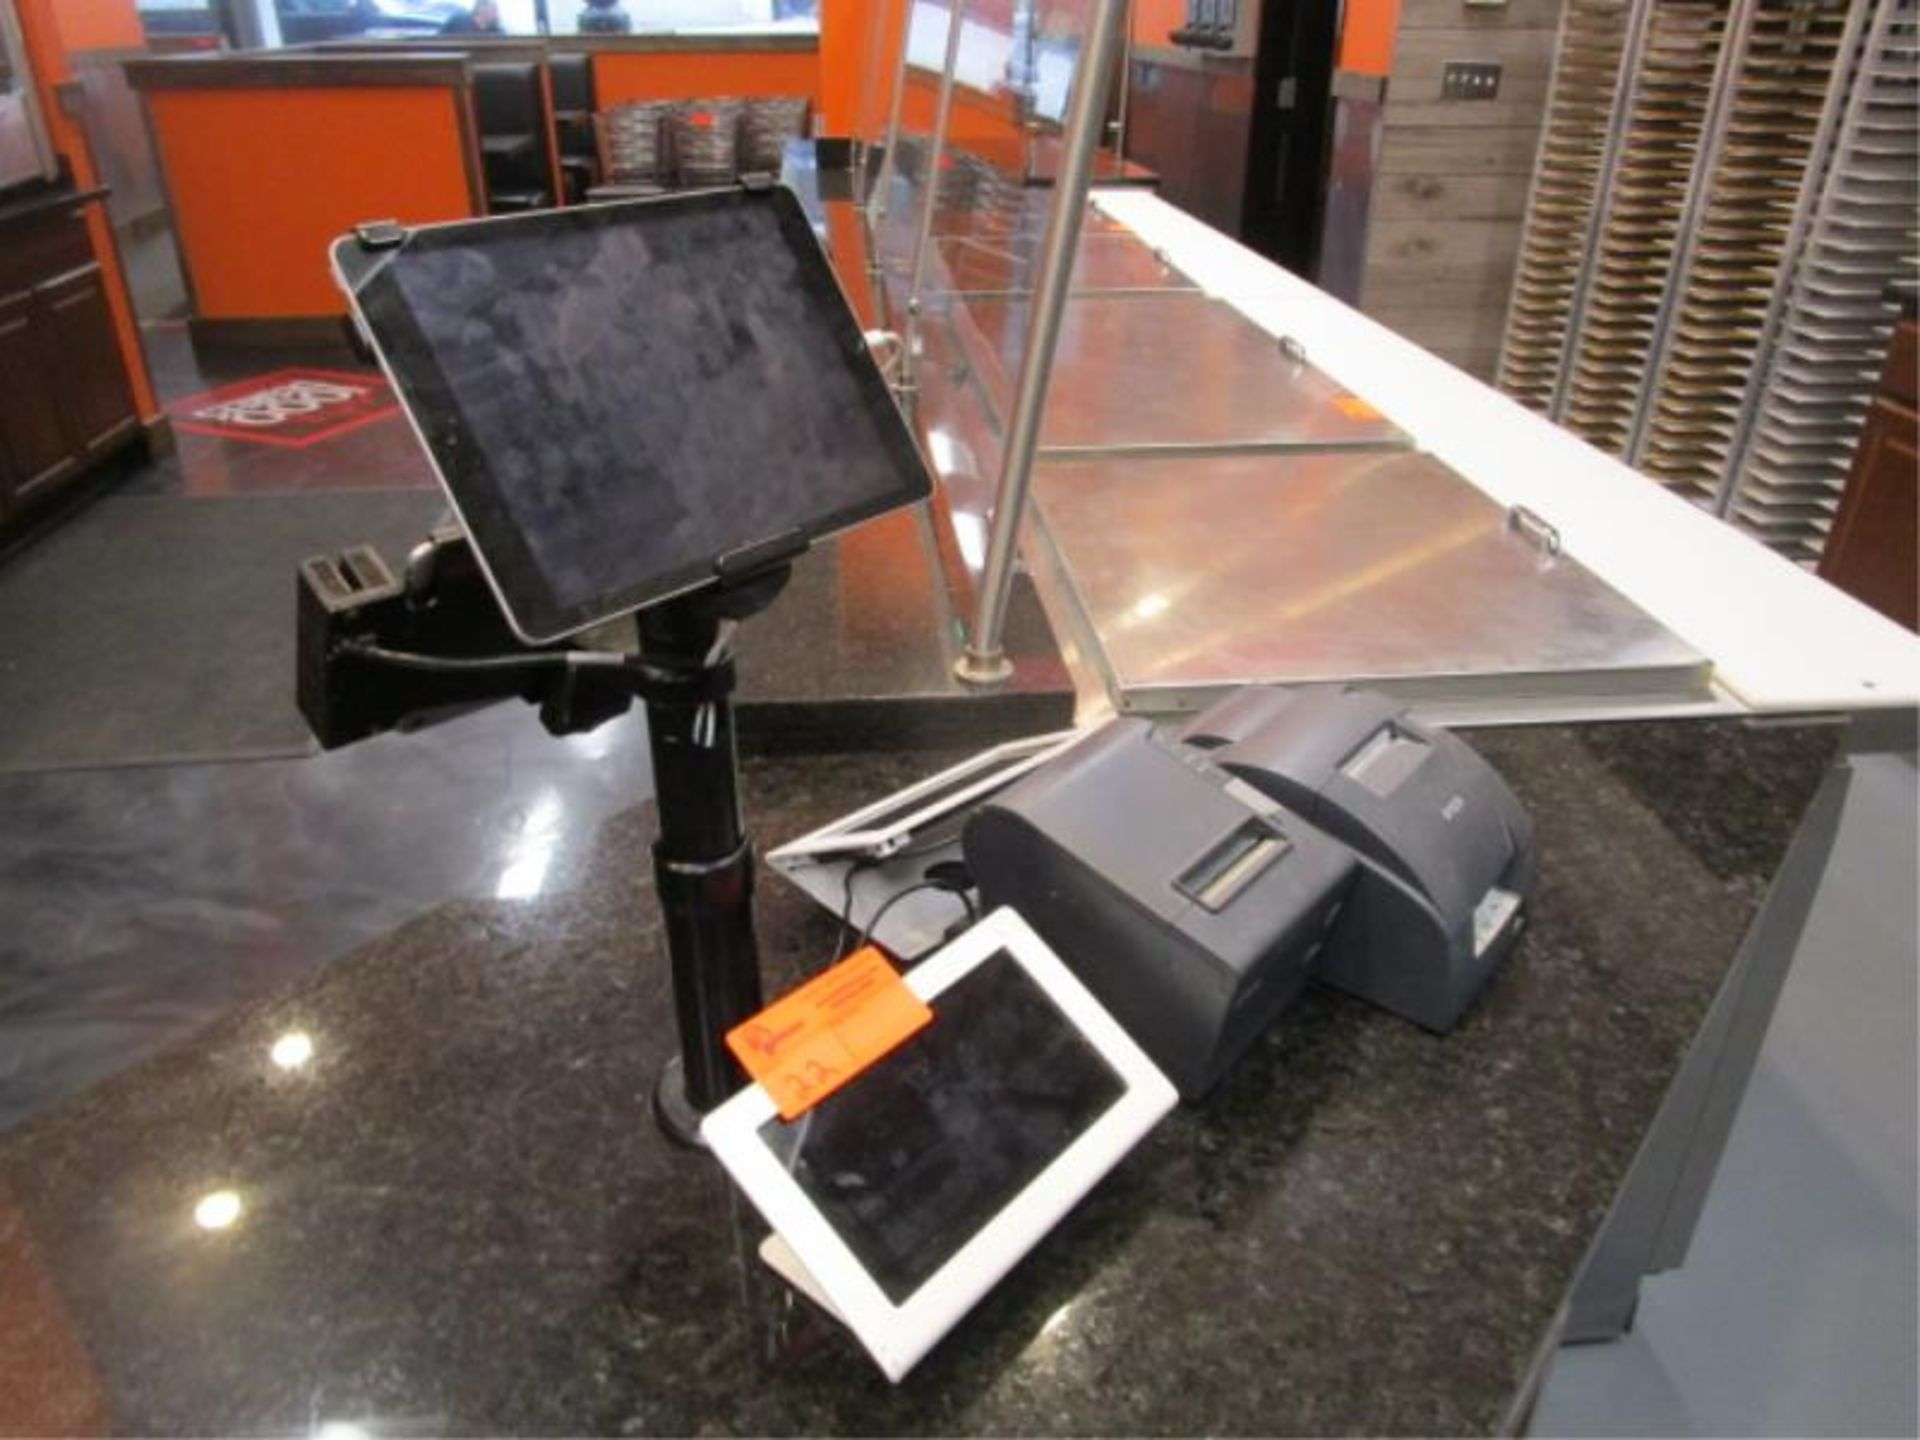 Lot 22 - POS Terminal w/ Apple IPad, Credit Card Swipe, (2) Nexus Tablets, Epson Receipt & Ticket Printer